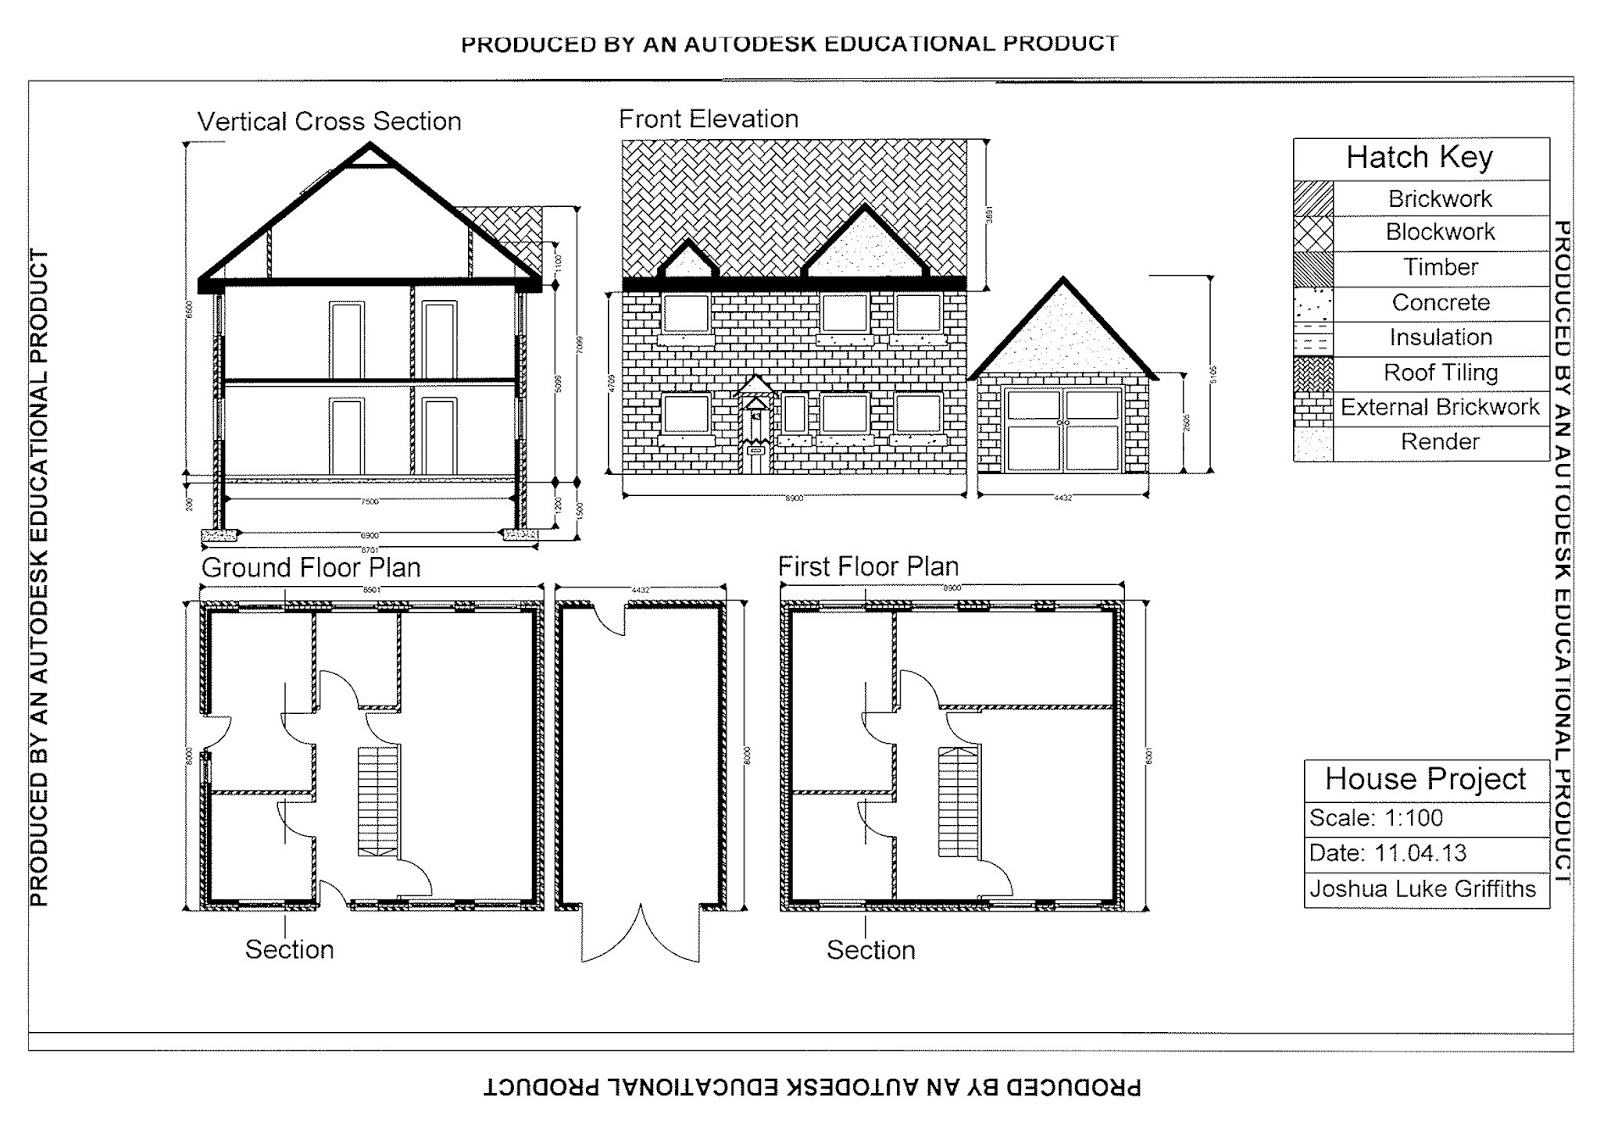 109 927 8327 may 2013 Autocad house drawings